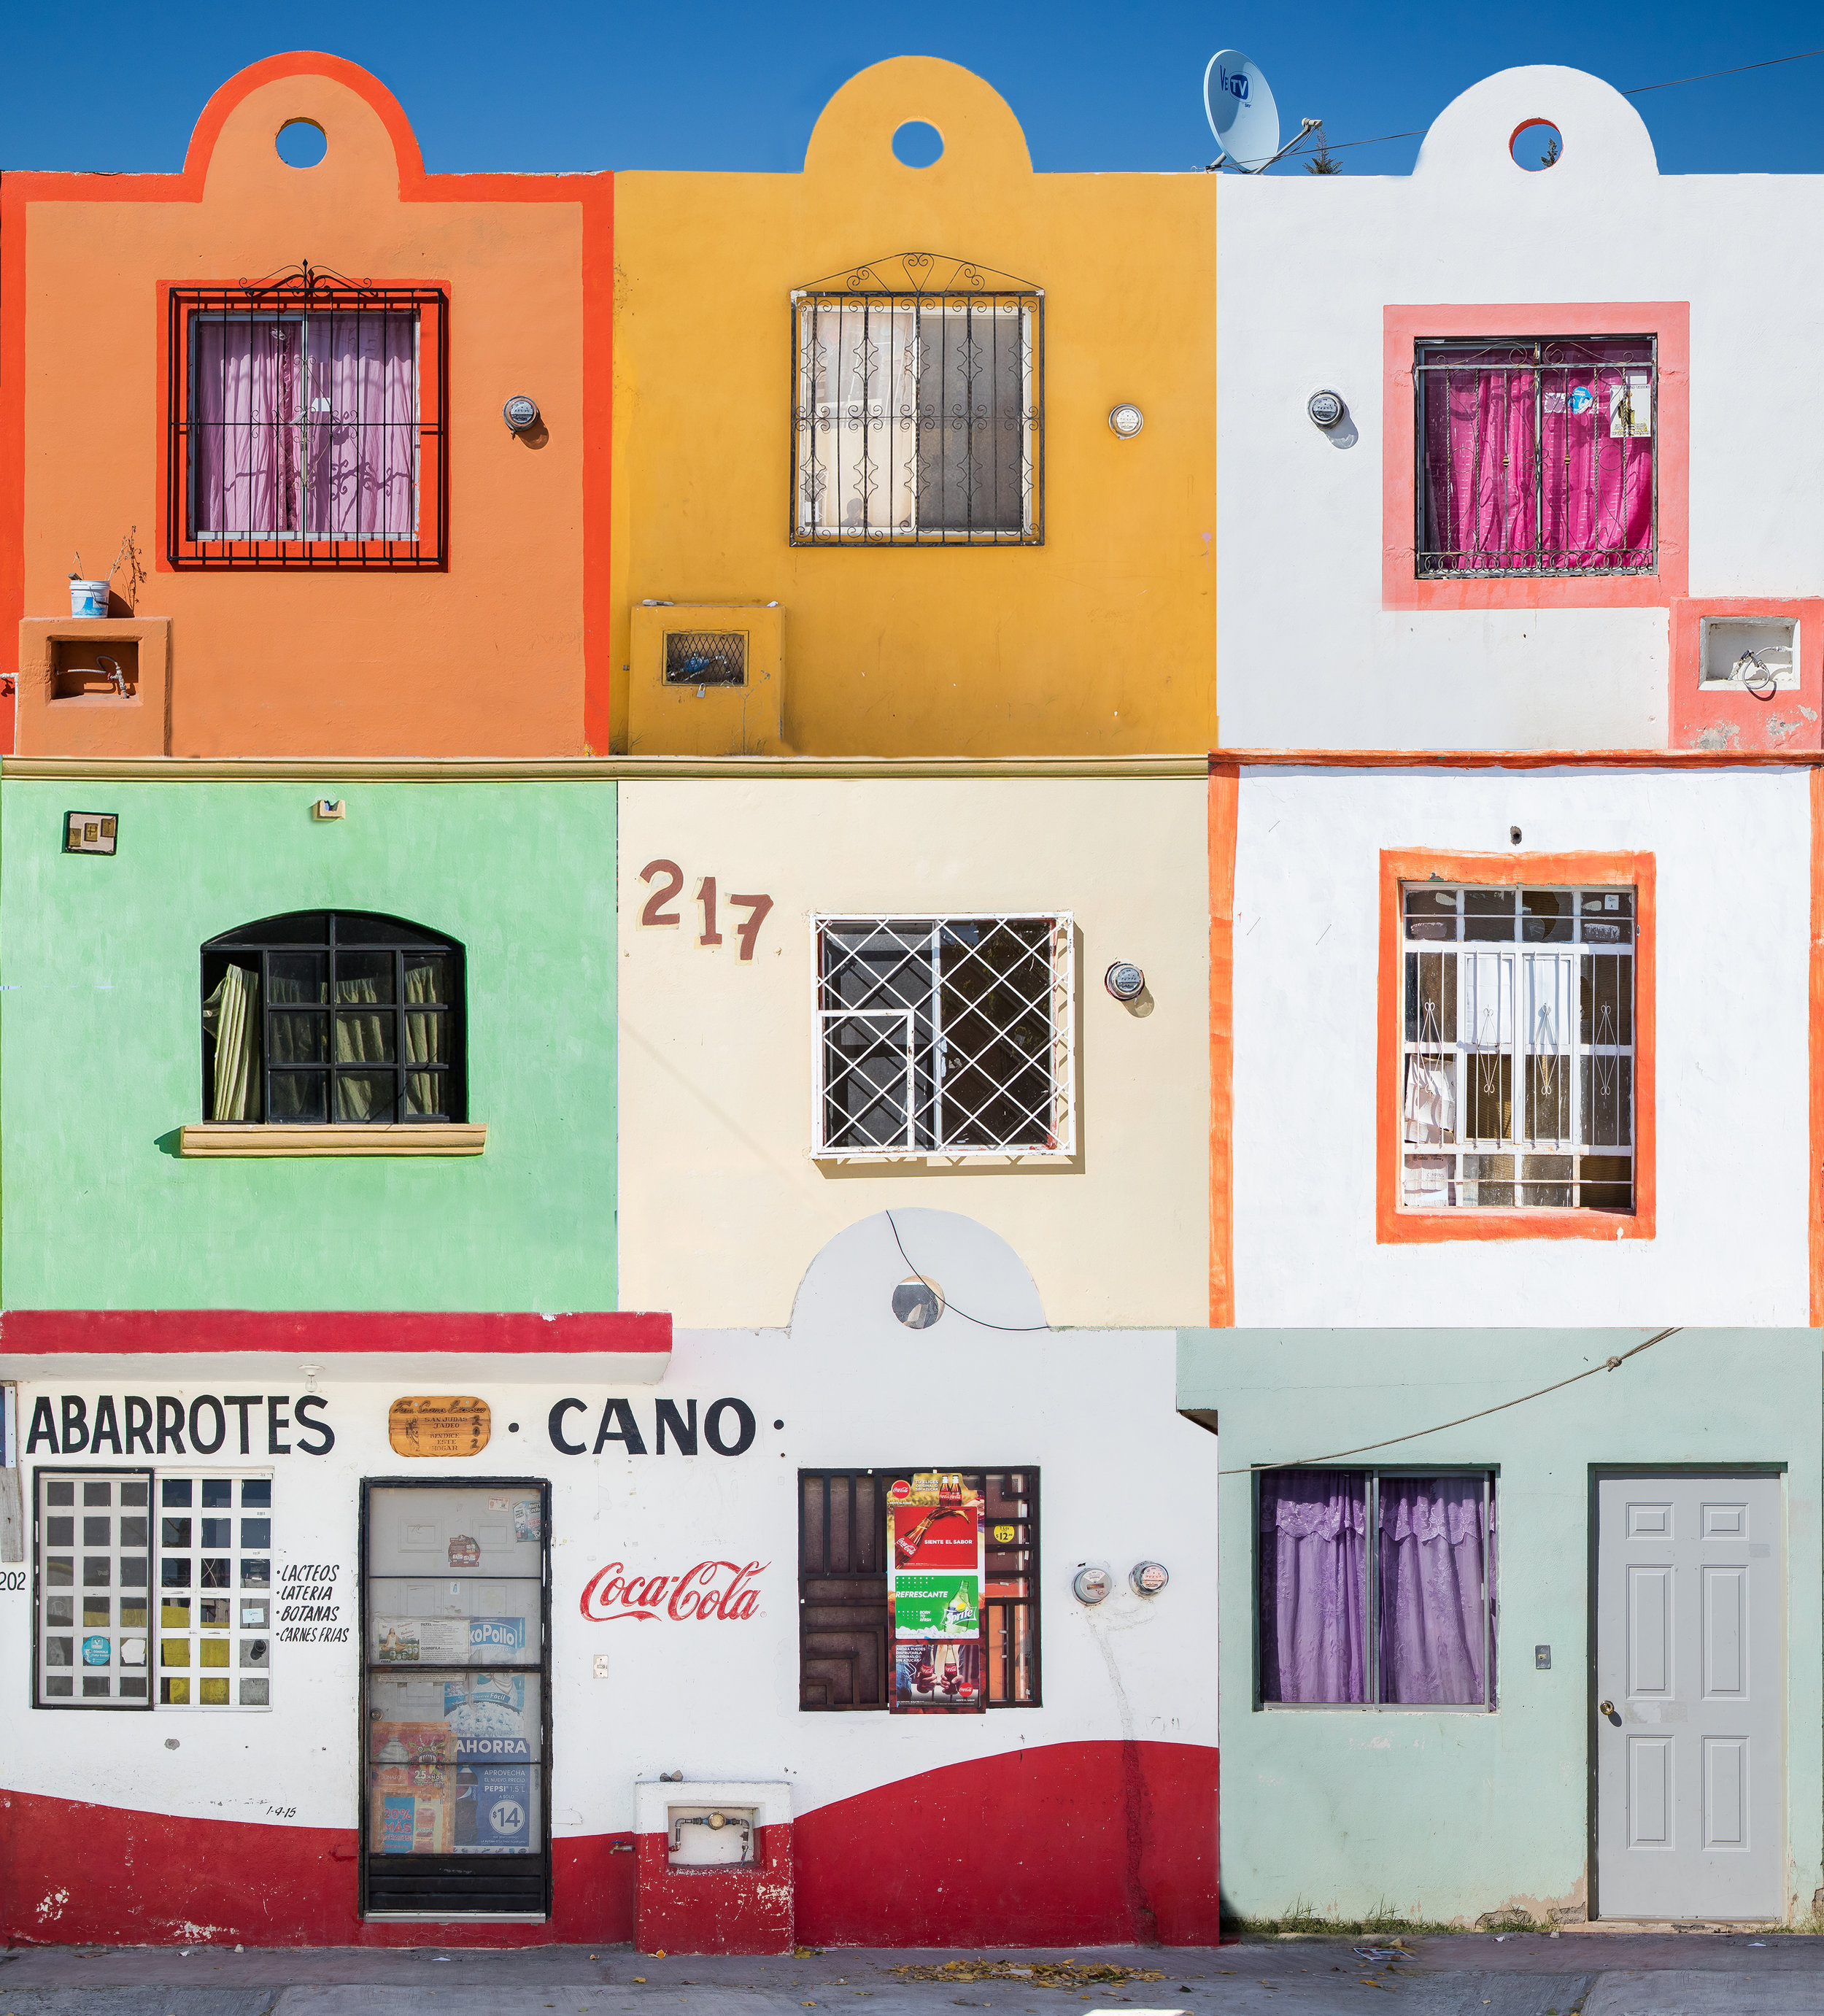 A collage of my favorite tiny stucco homes and shops seen in Parras de la Fuente, Mexico. This is 9 images stitched together with Photoshop in an attempt to resemble one cohesive structure.